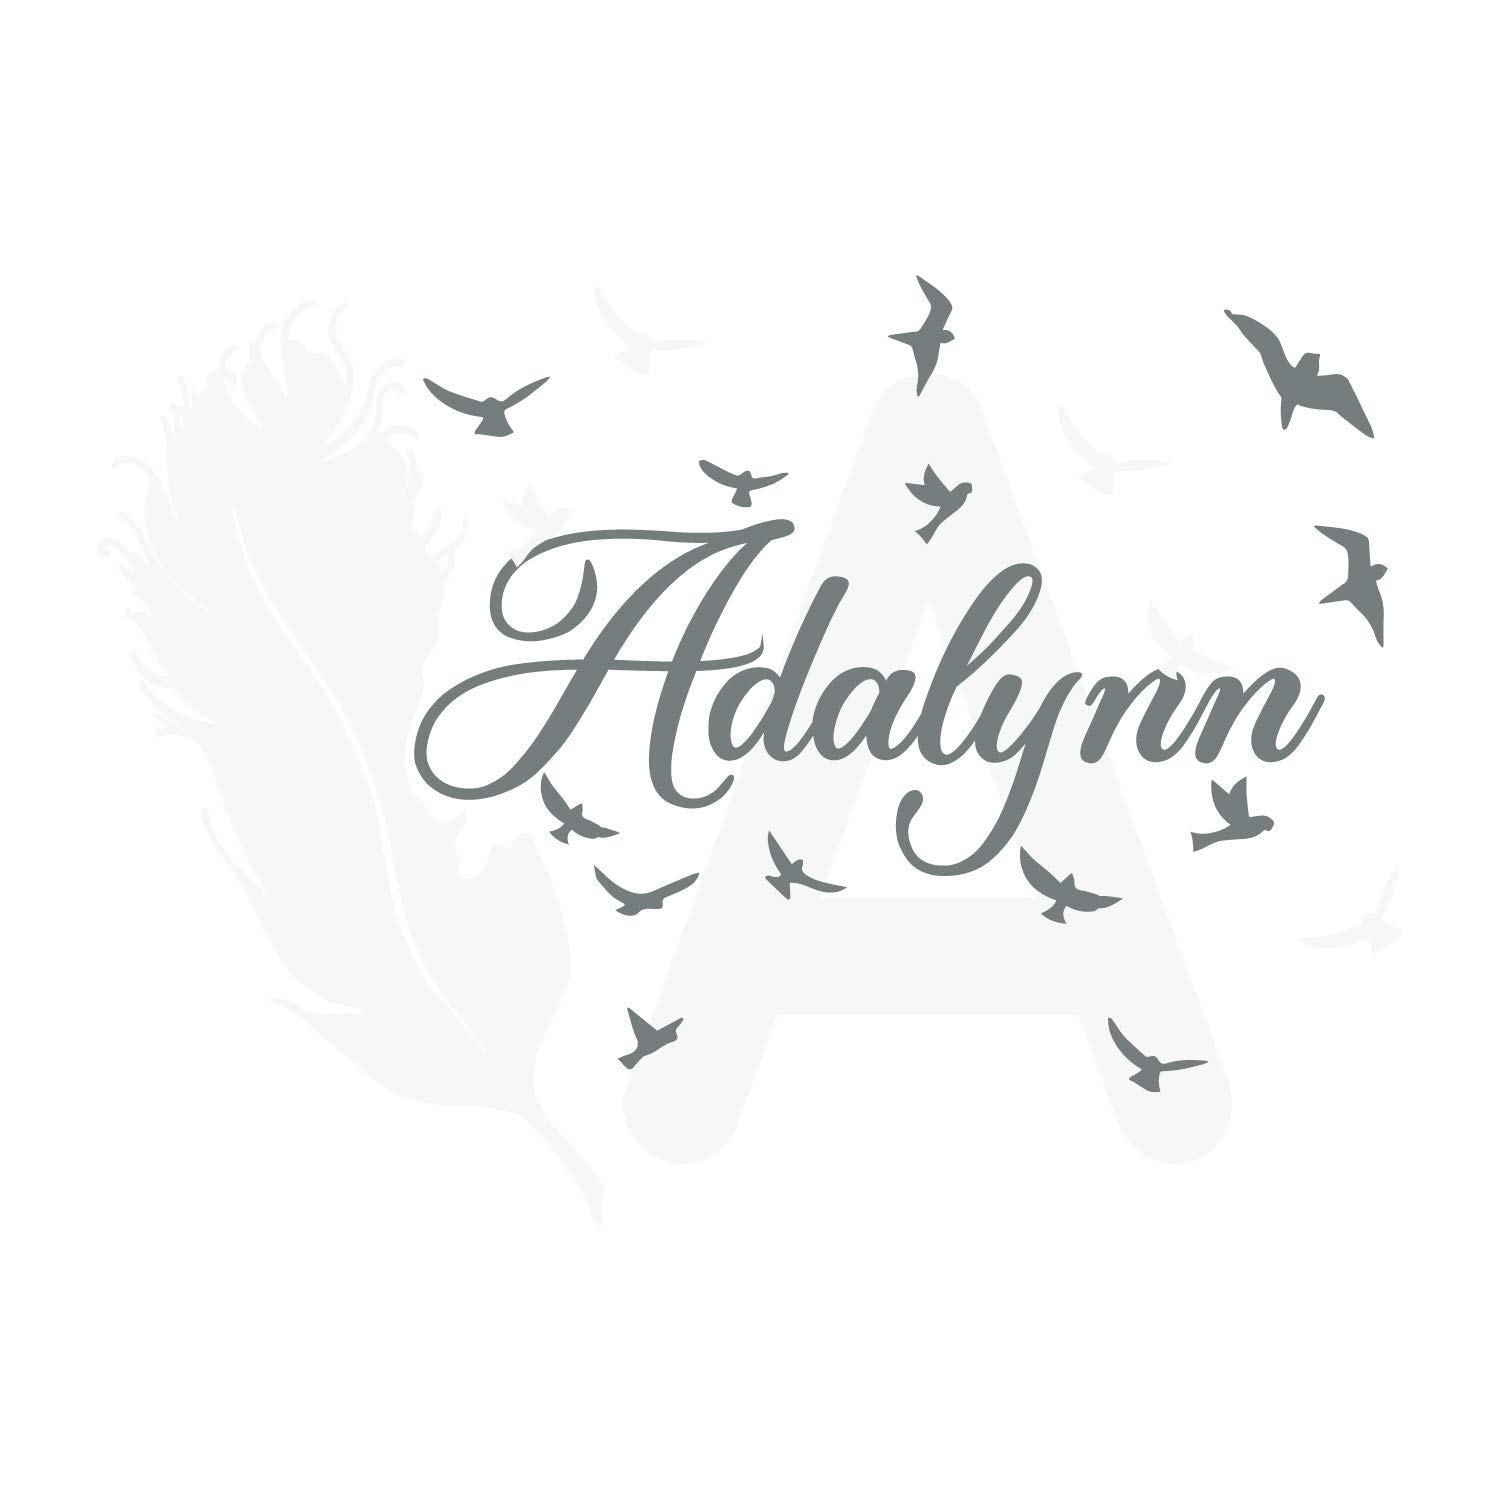 Finally resale start Girl Finally popular brand name wall decal baby decor room monogram feather n